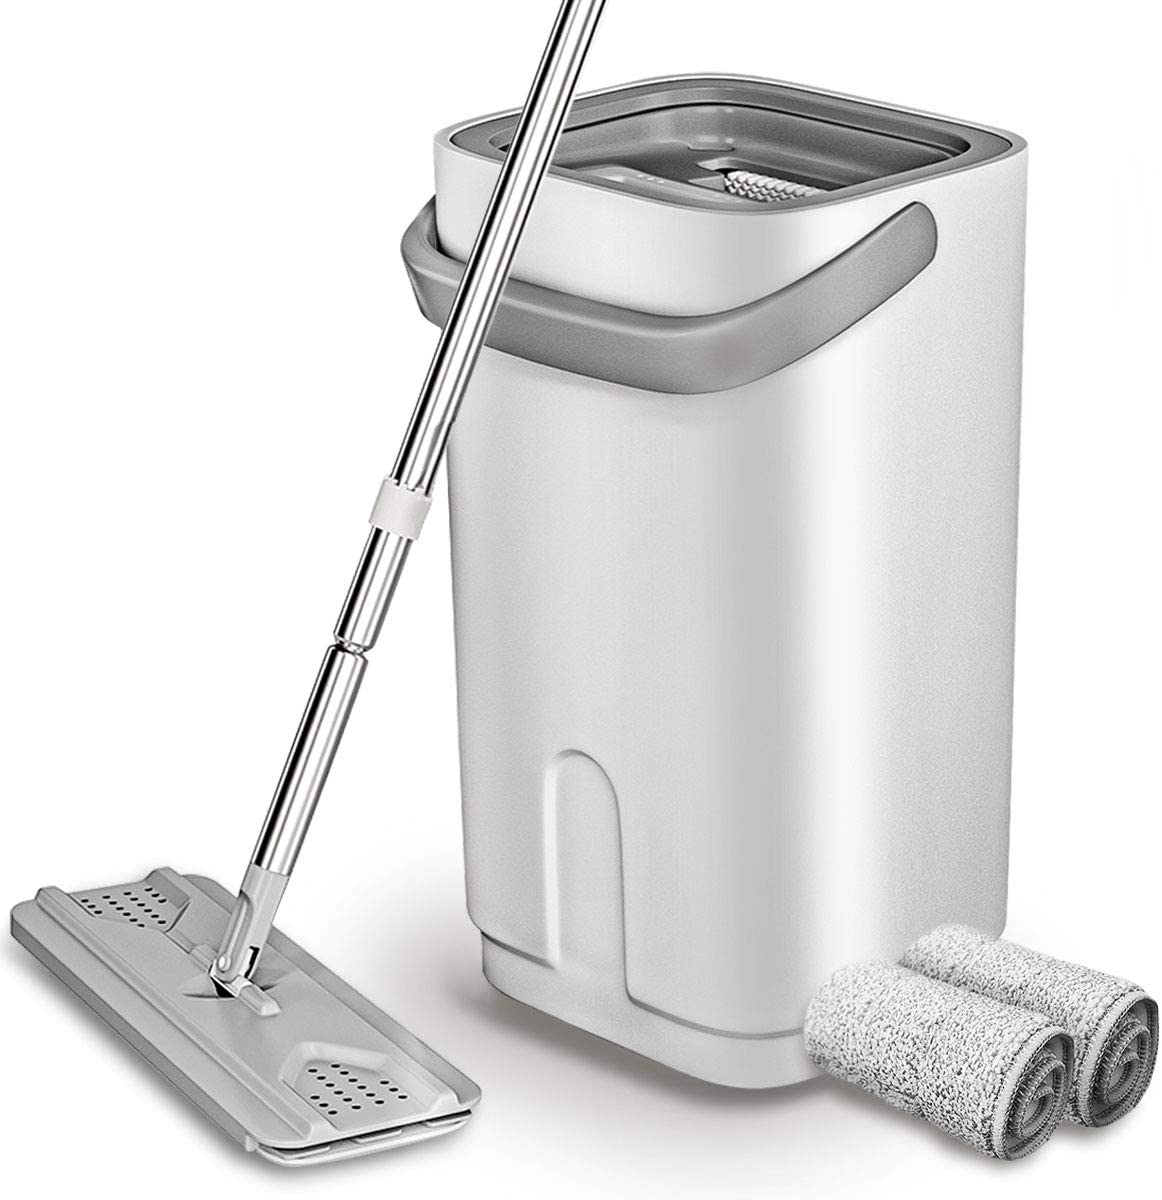 LESNIC Microfiber Flat Mop with Bucket Set, Floor Cleaning Squeeze Hand Free Floor/Ceiling Mop for Home, Office, Etc, 2 Reusable & Washable Mop Pads, Stainless Steel Handle White Grey